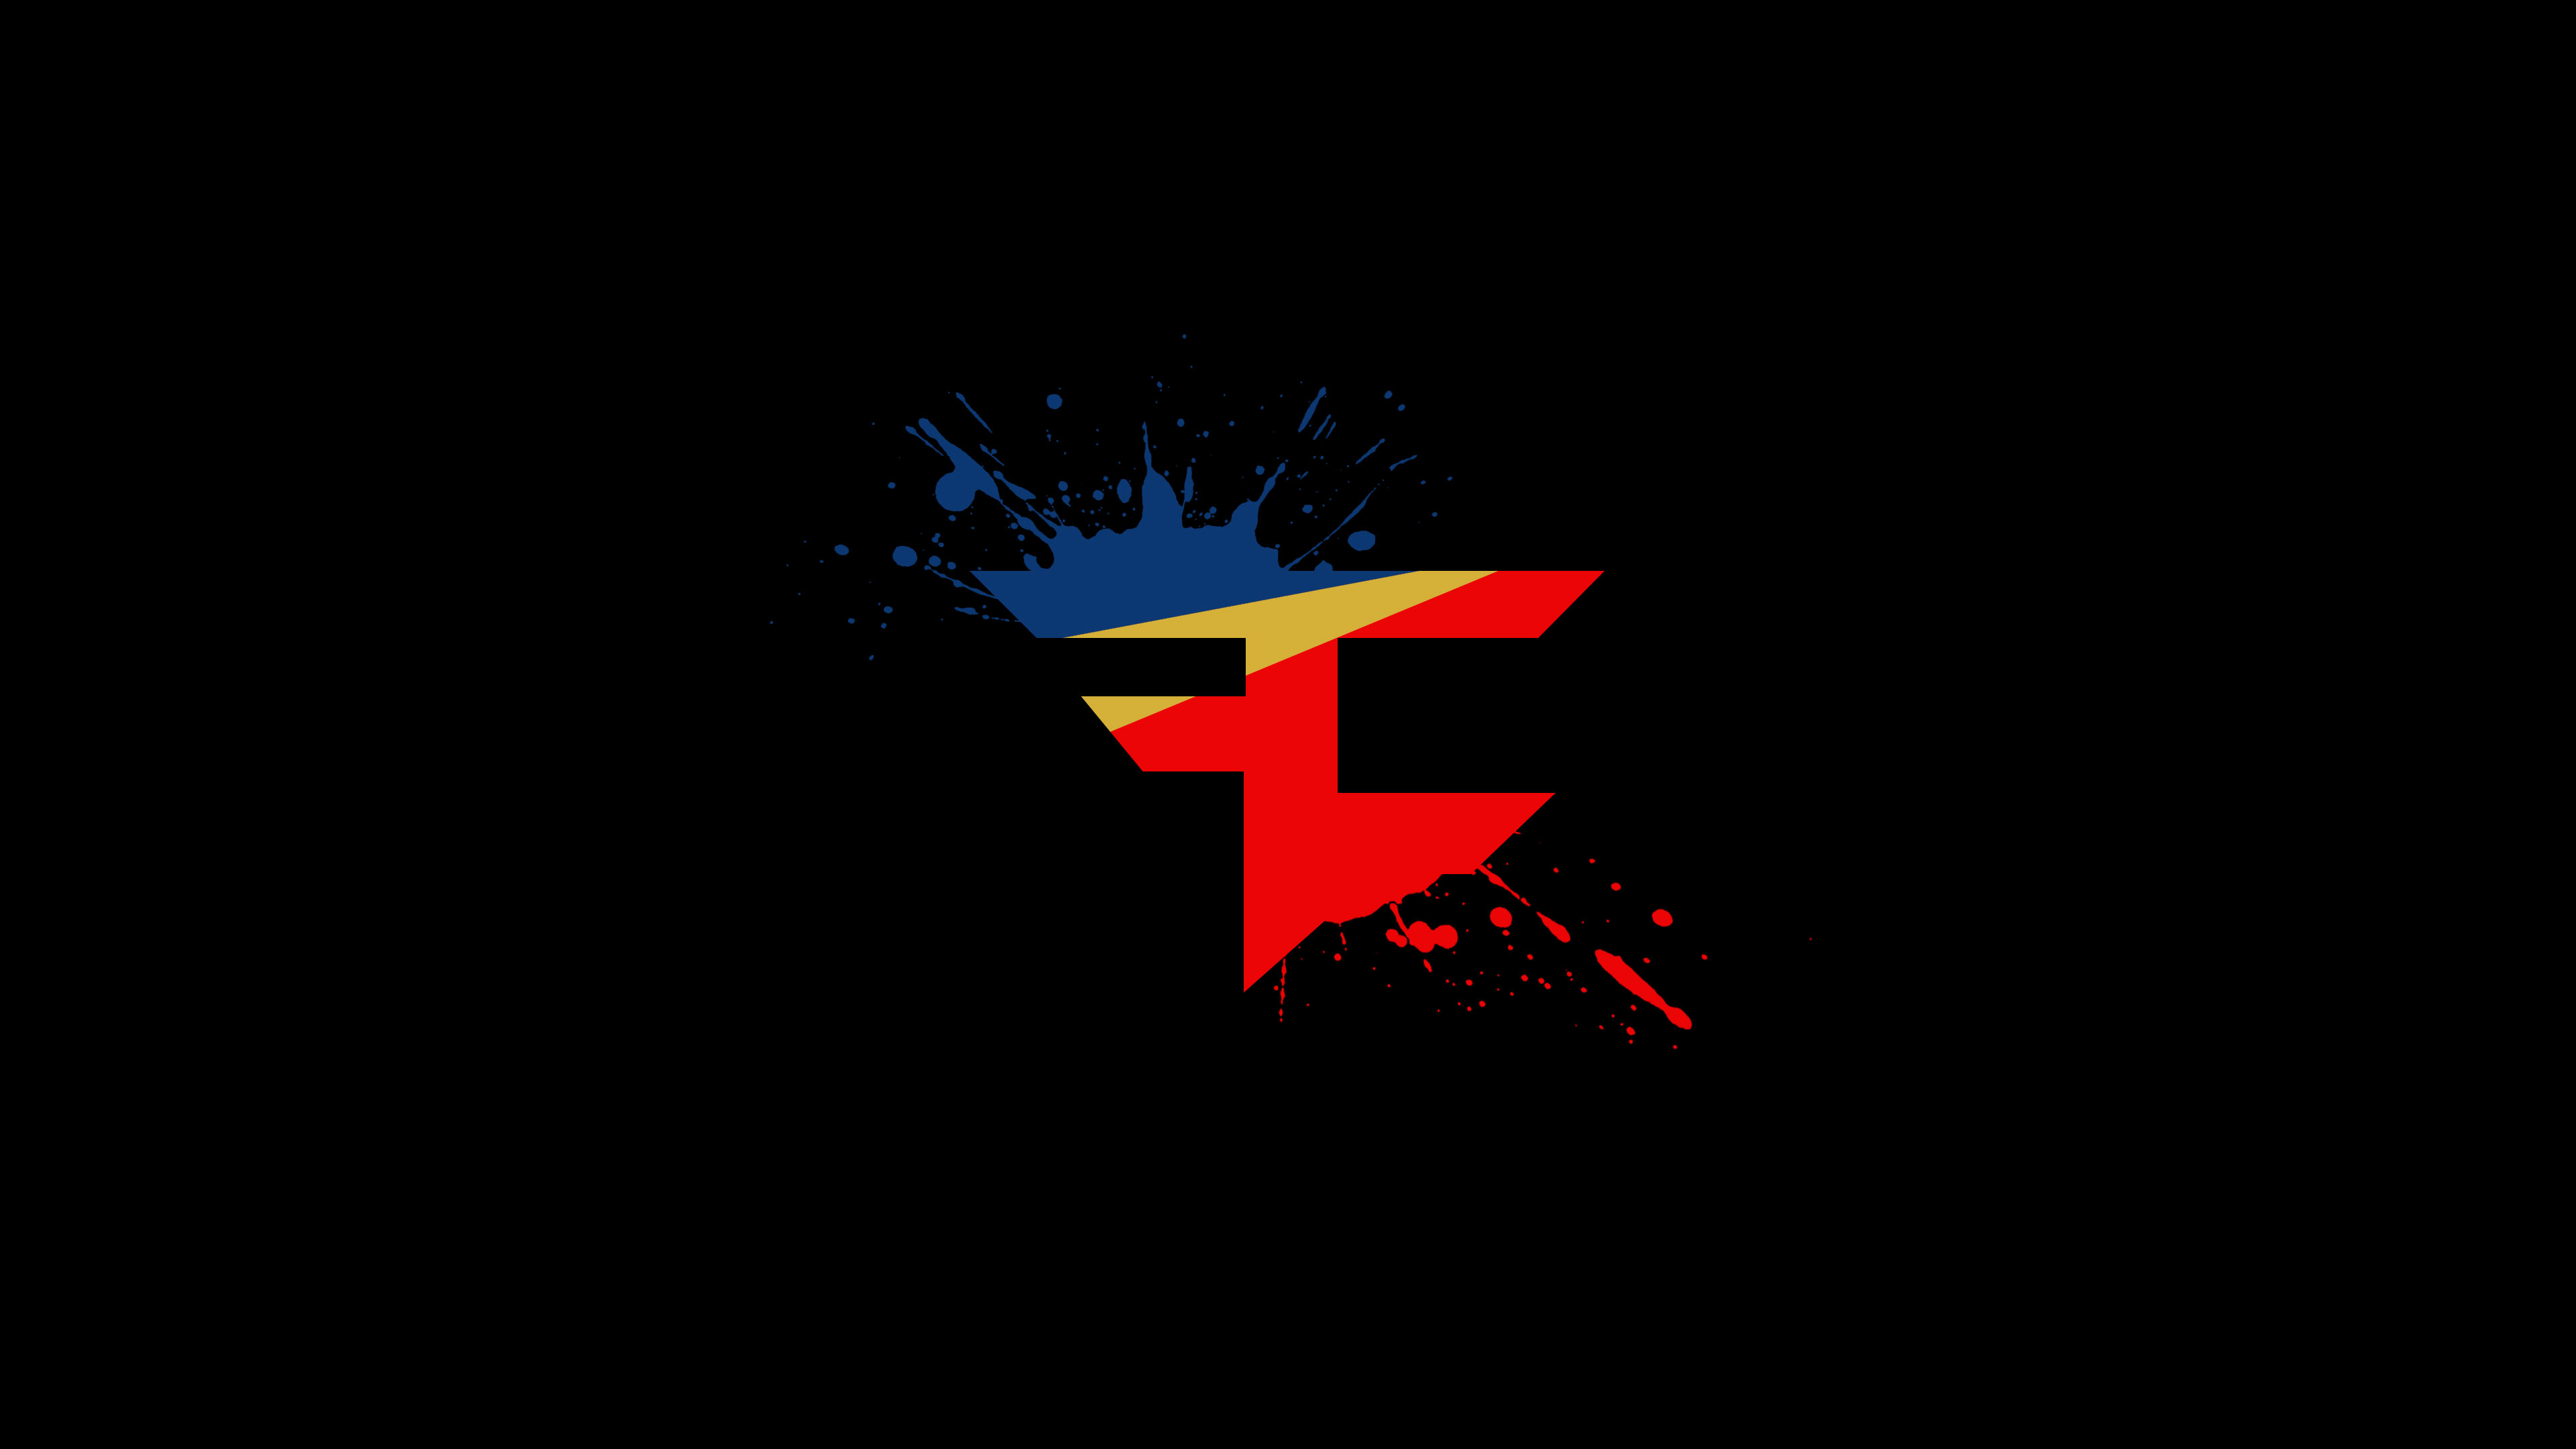 Faze clan wallpaper images galleries for Wallpaper to go